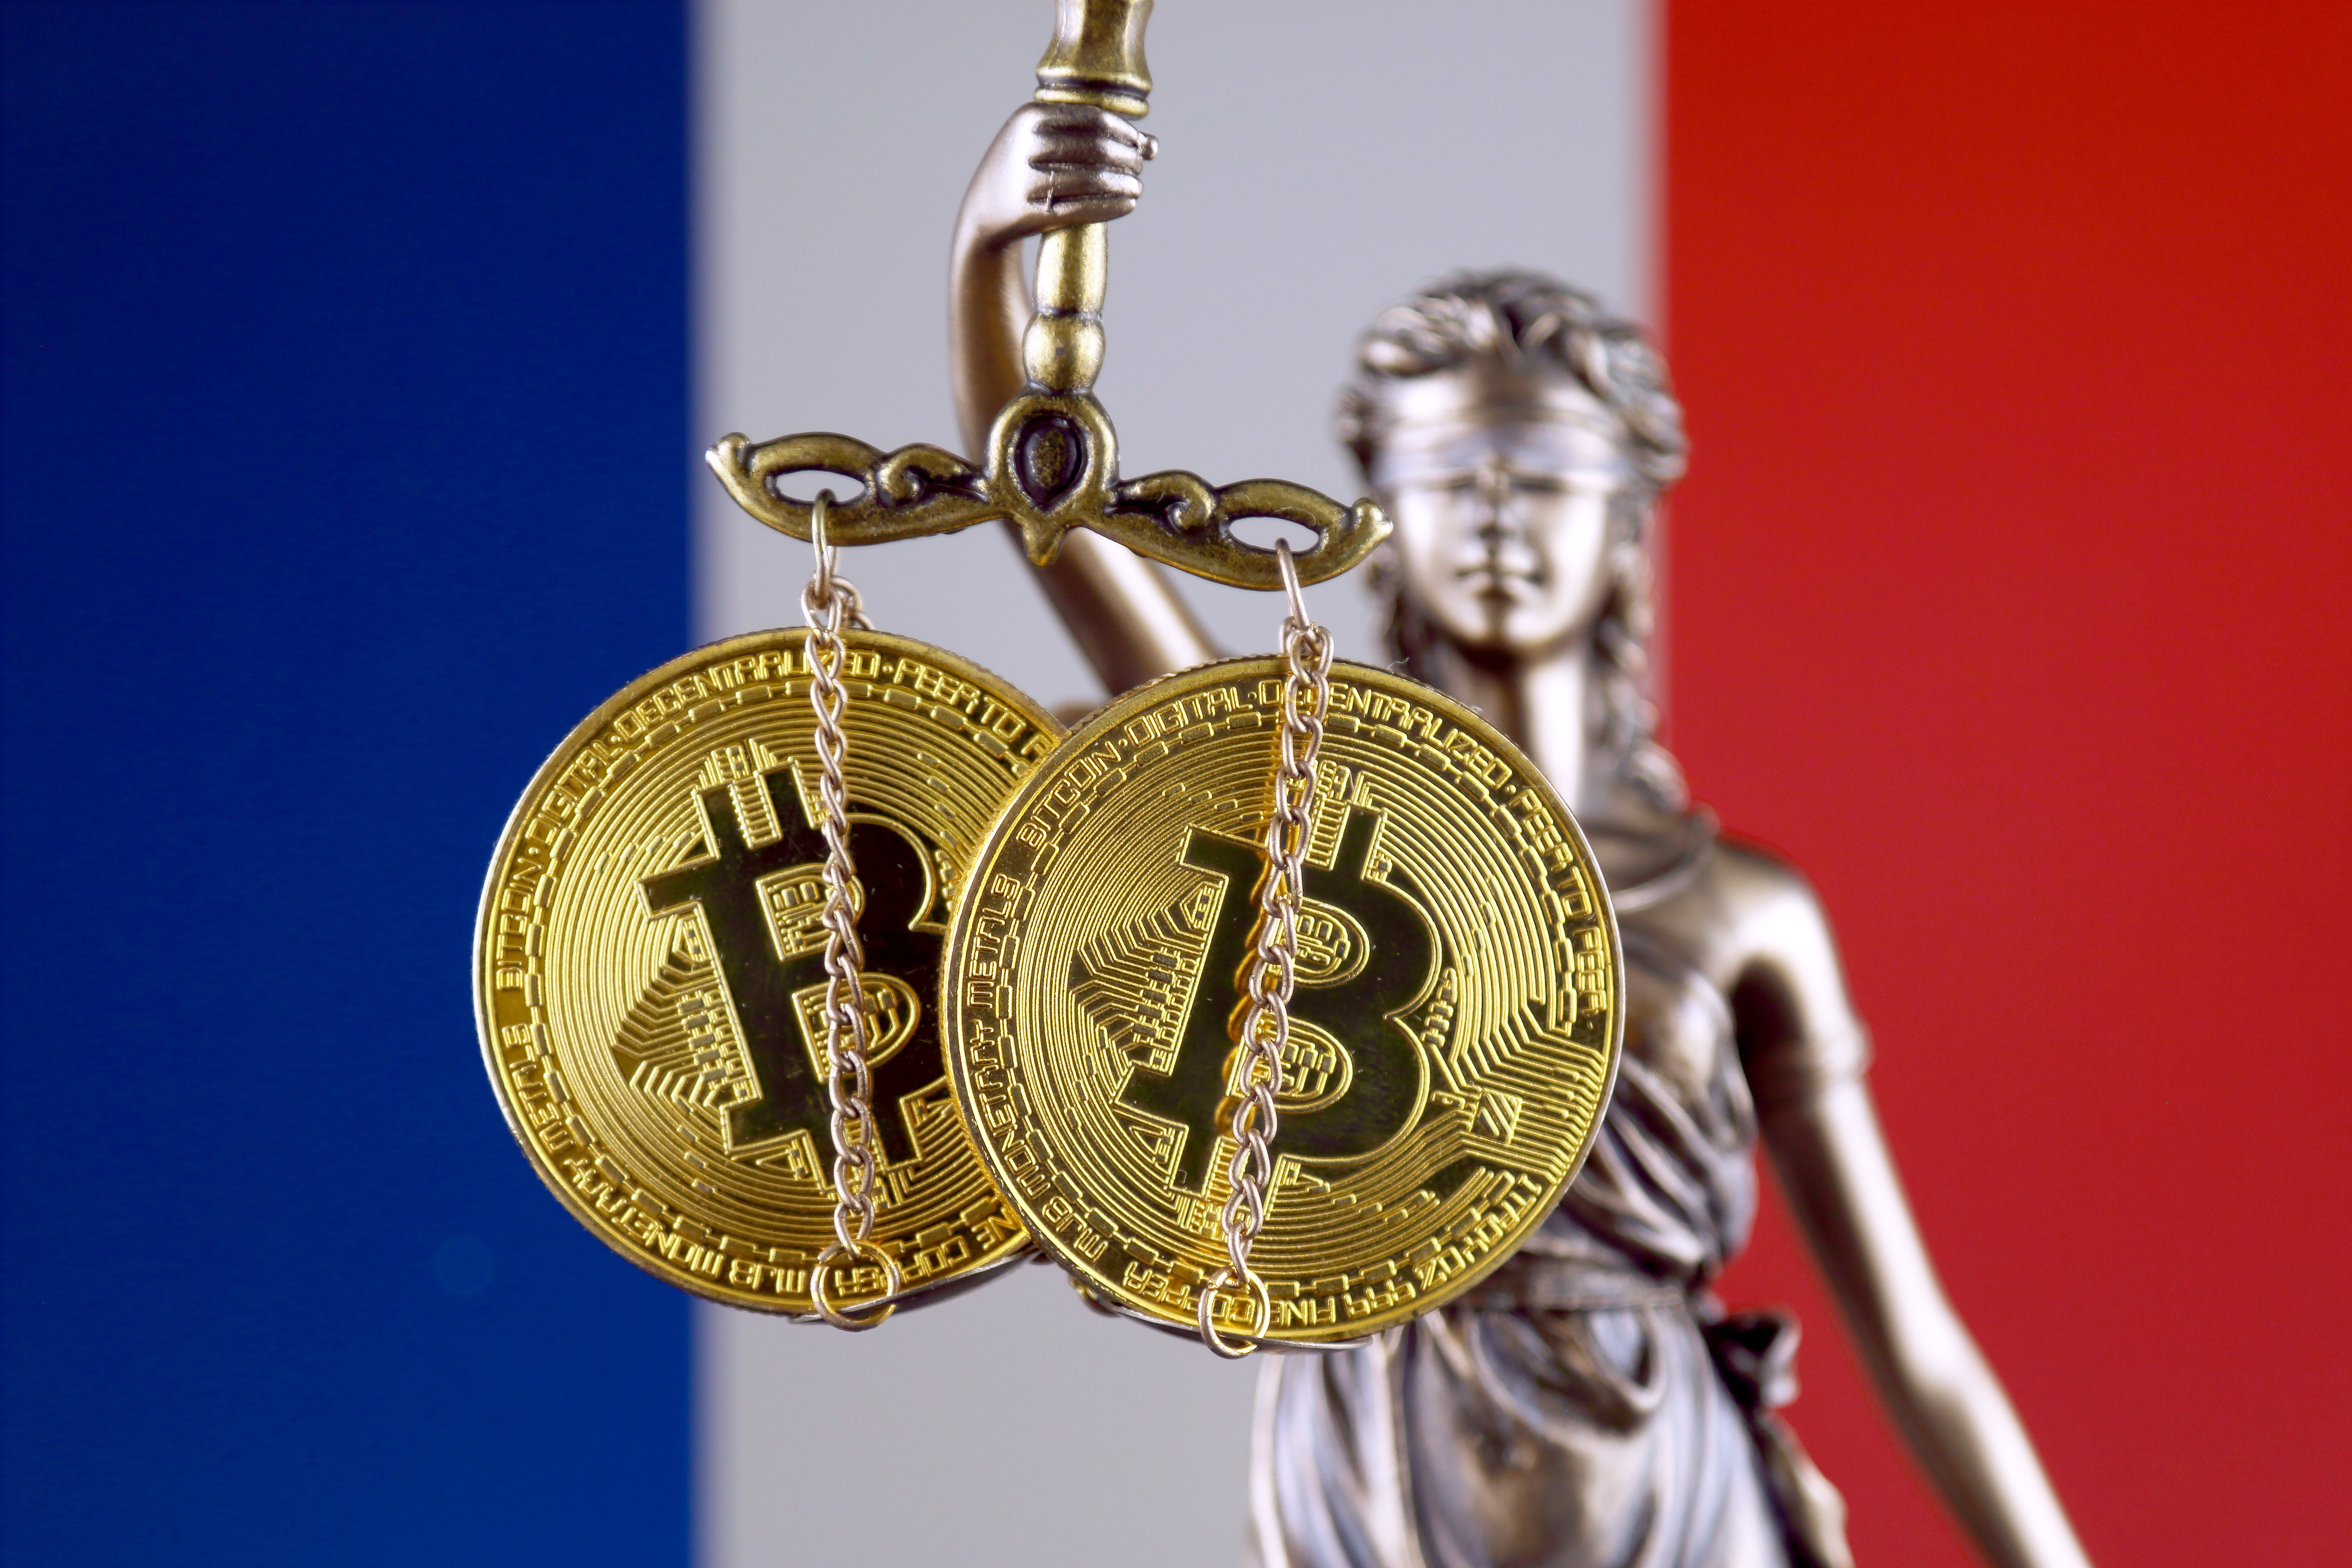 law and justice symbol holding bitcoin in front of french flag